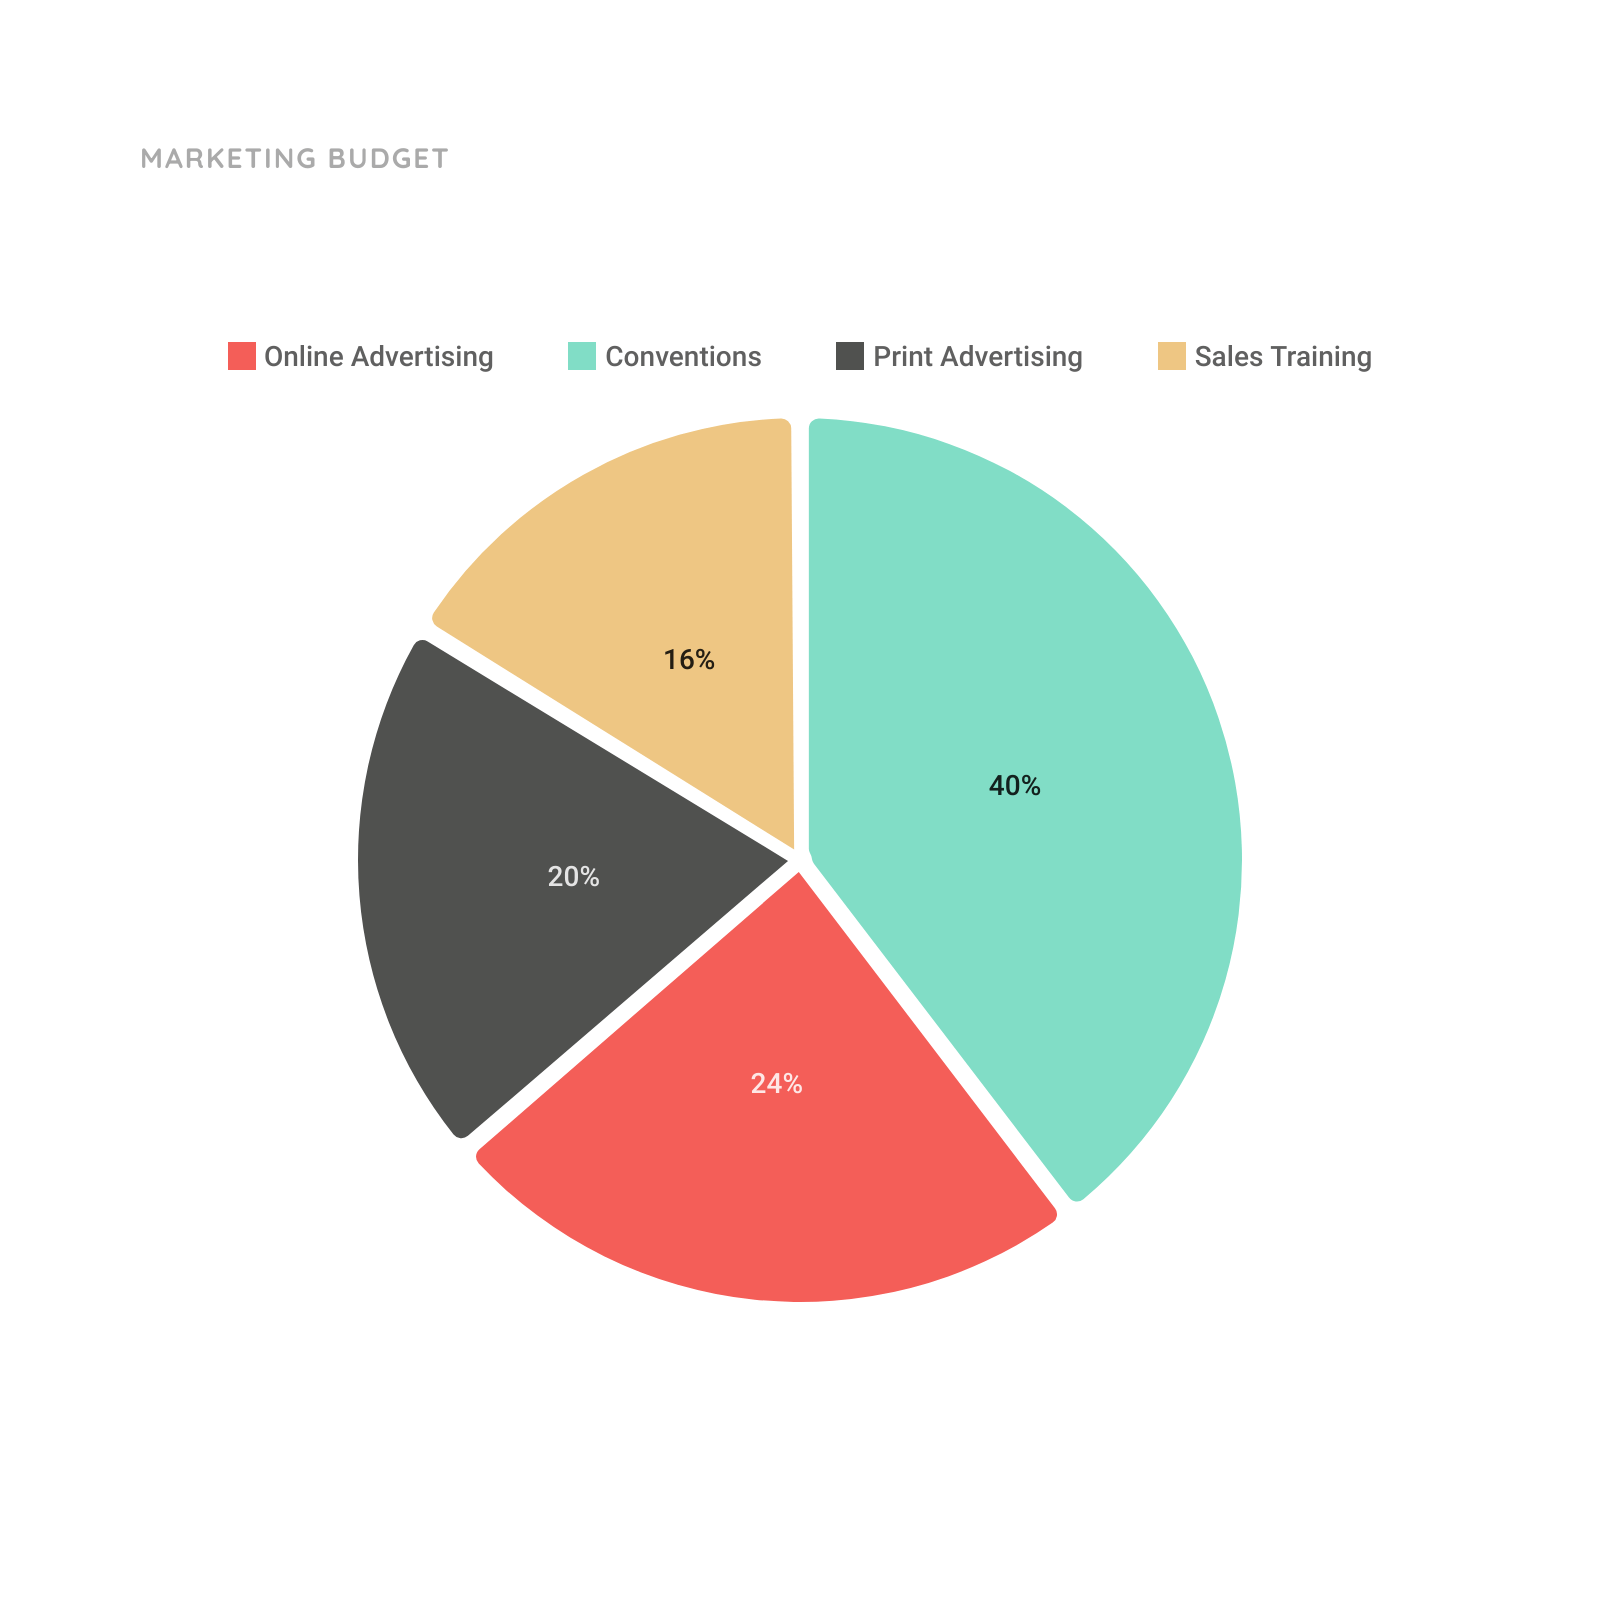 Budget Pie Chart Template For Marketing